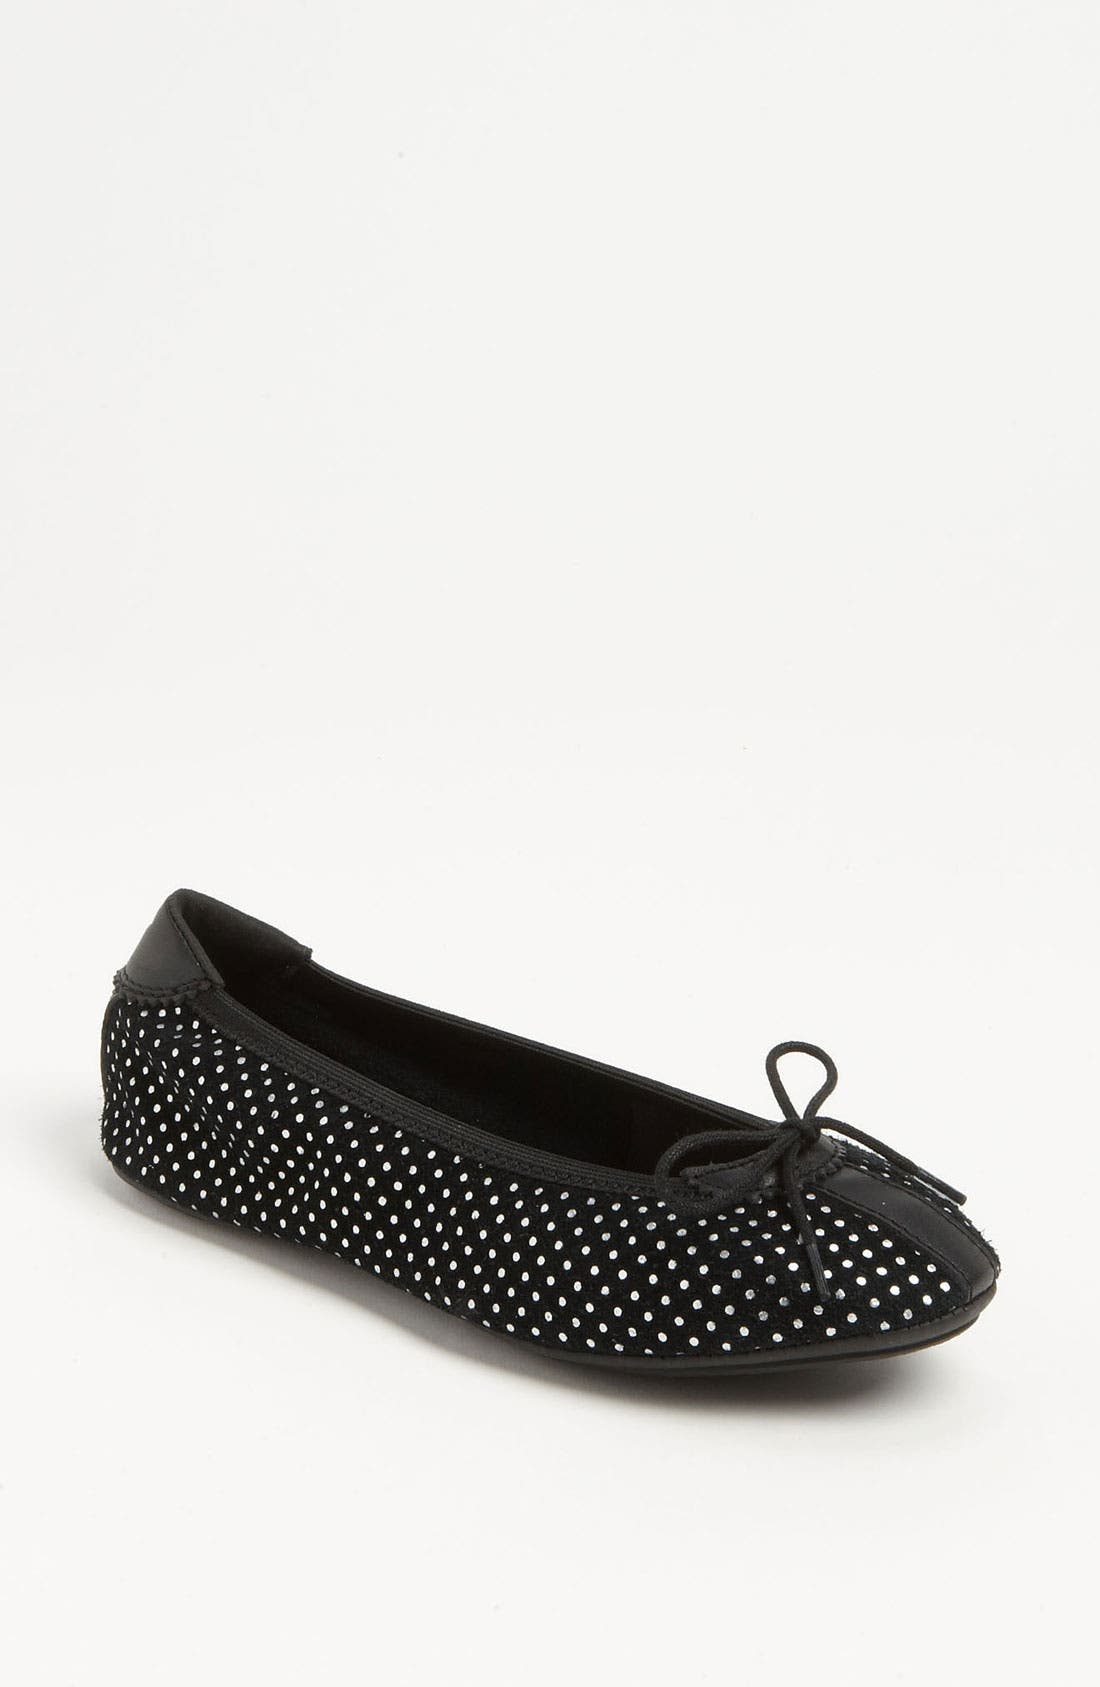 Main Image - PUMA 'Kitata' Polka Dot Slip-On